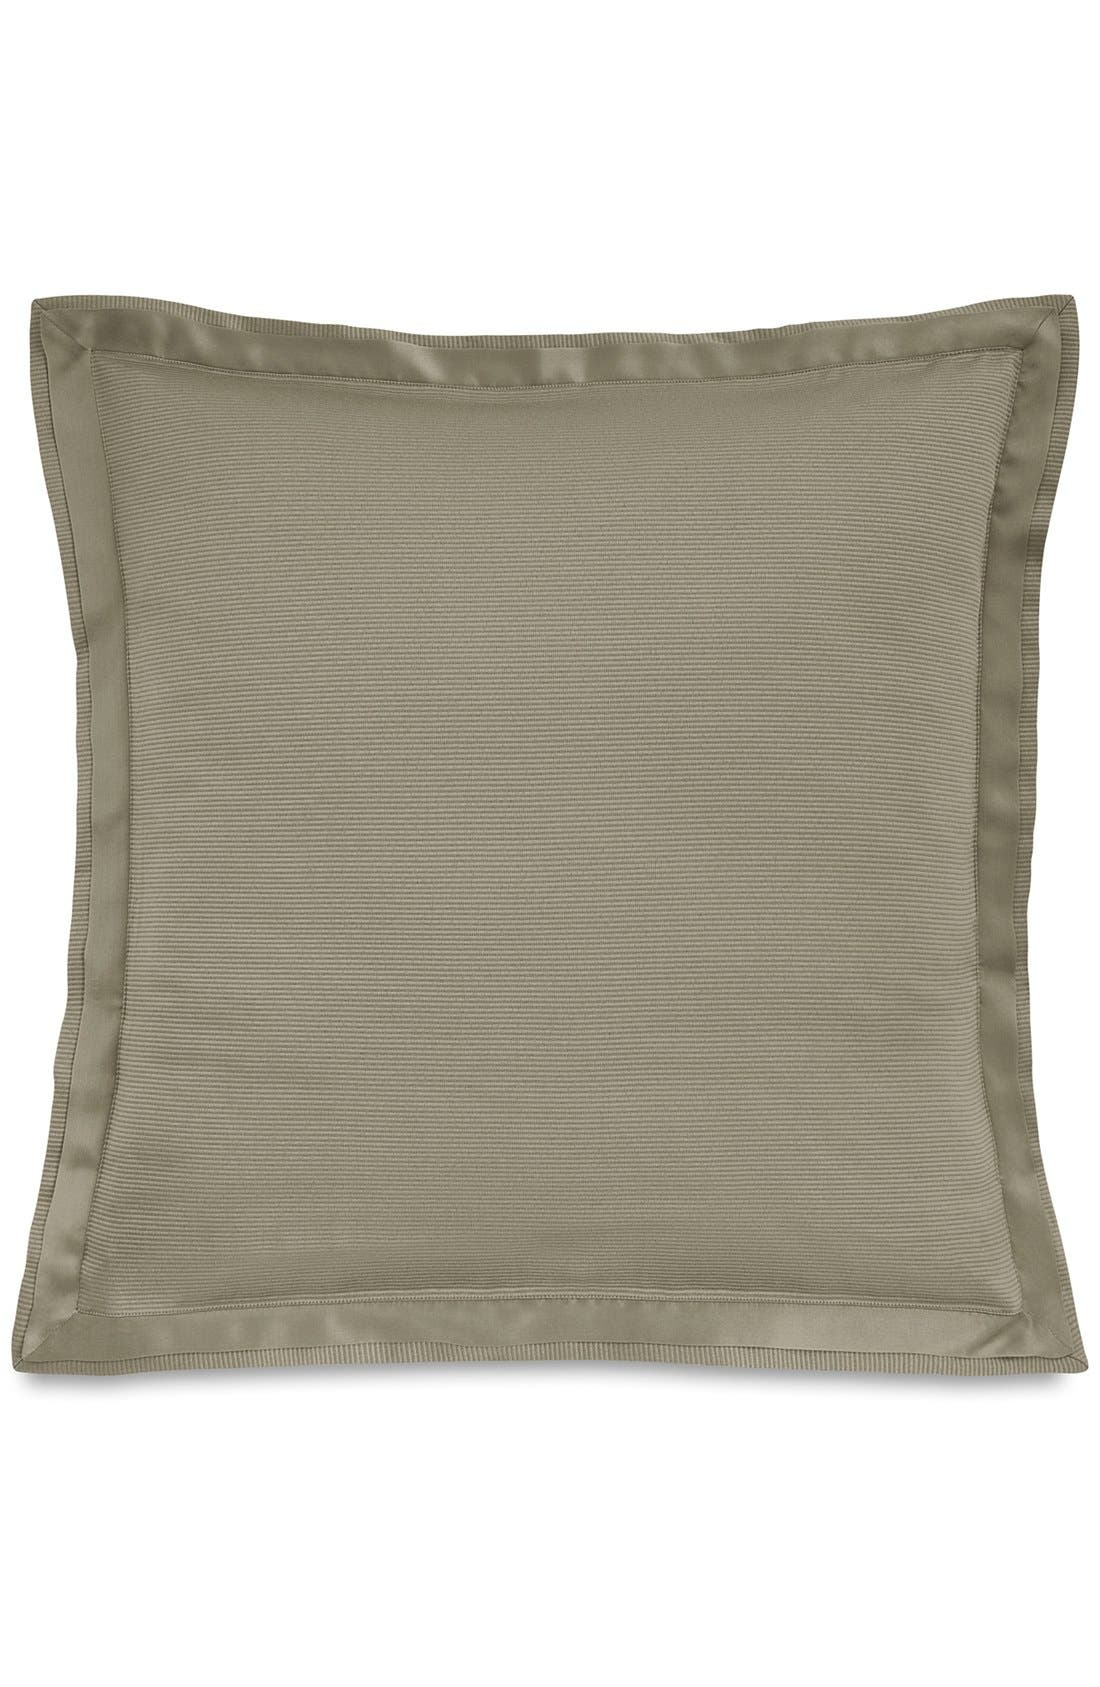 Alternate Image 1 Selected - Donna Karan 'Modern Classics - Ottoman' Sham (Online Only)